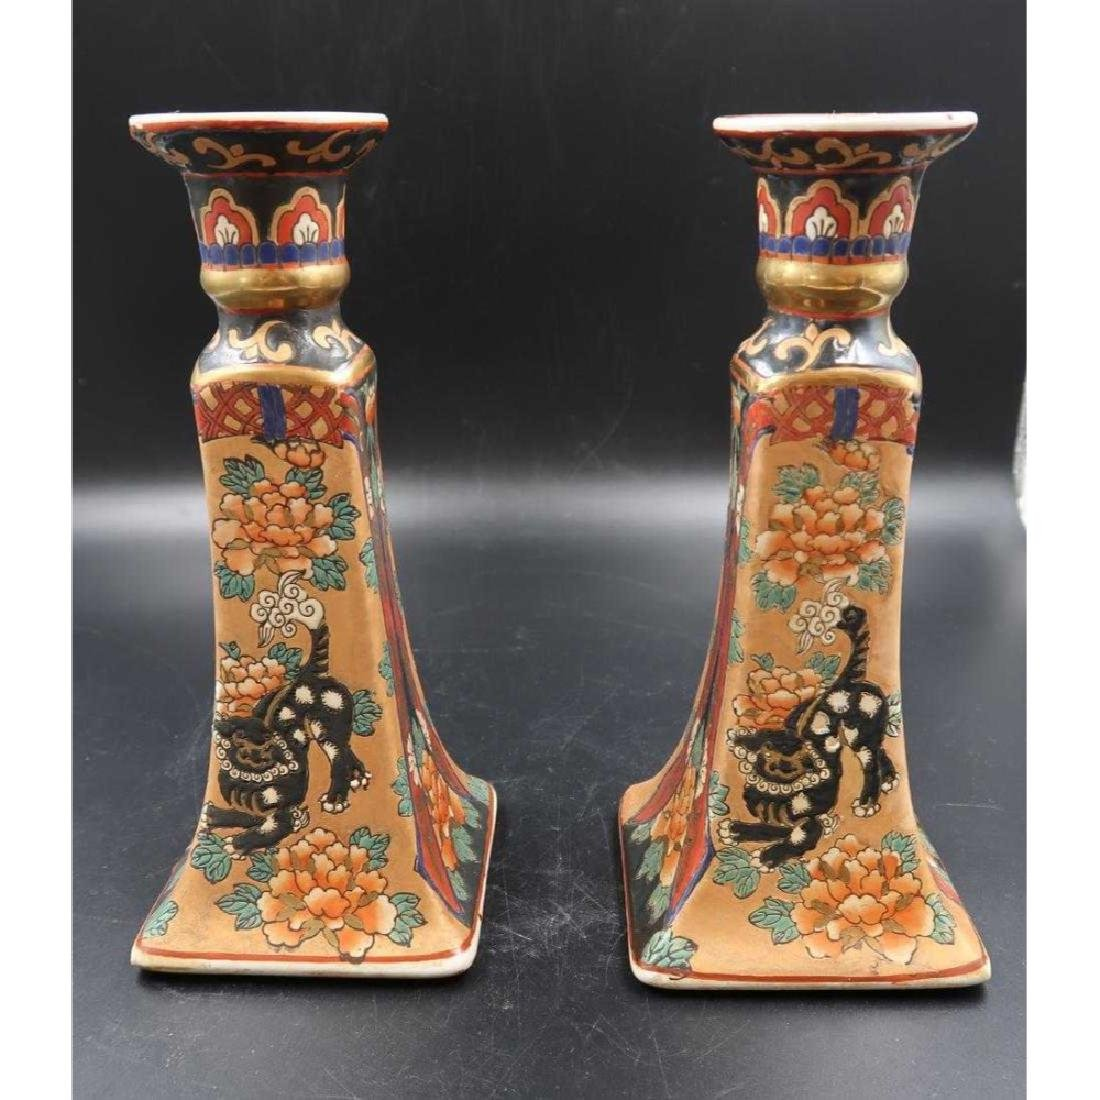 Pair 1860s import medallion candle sticks